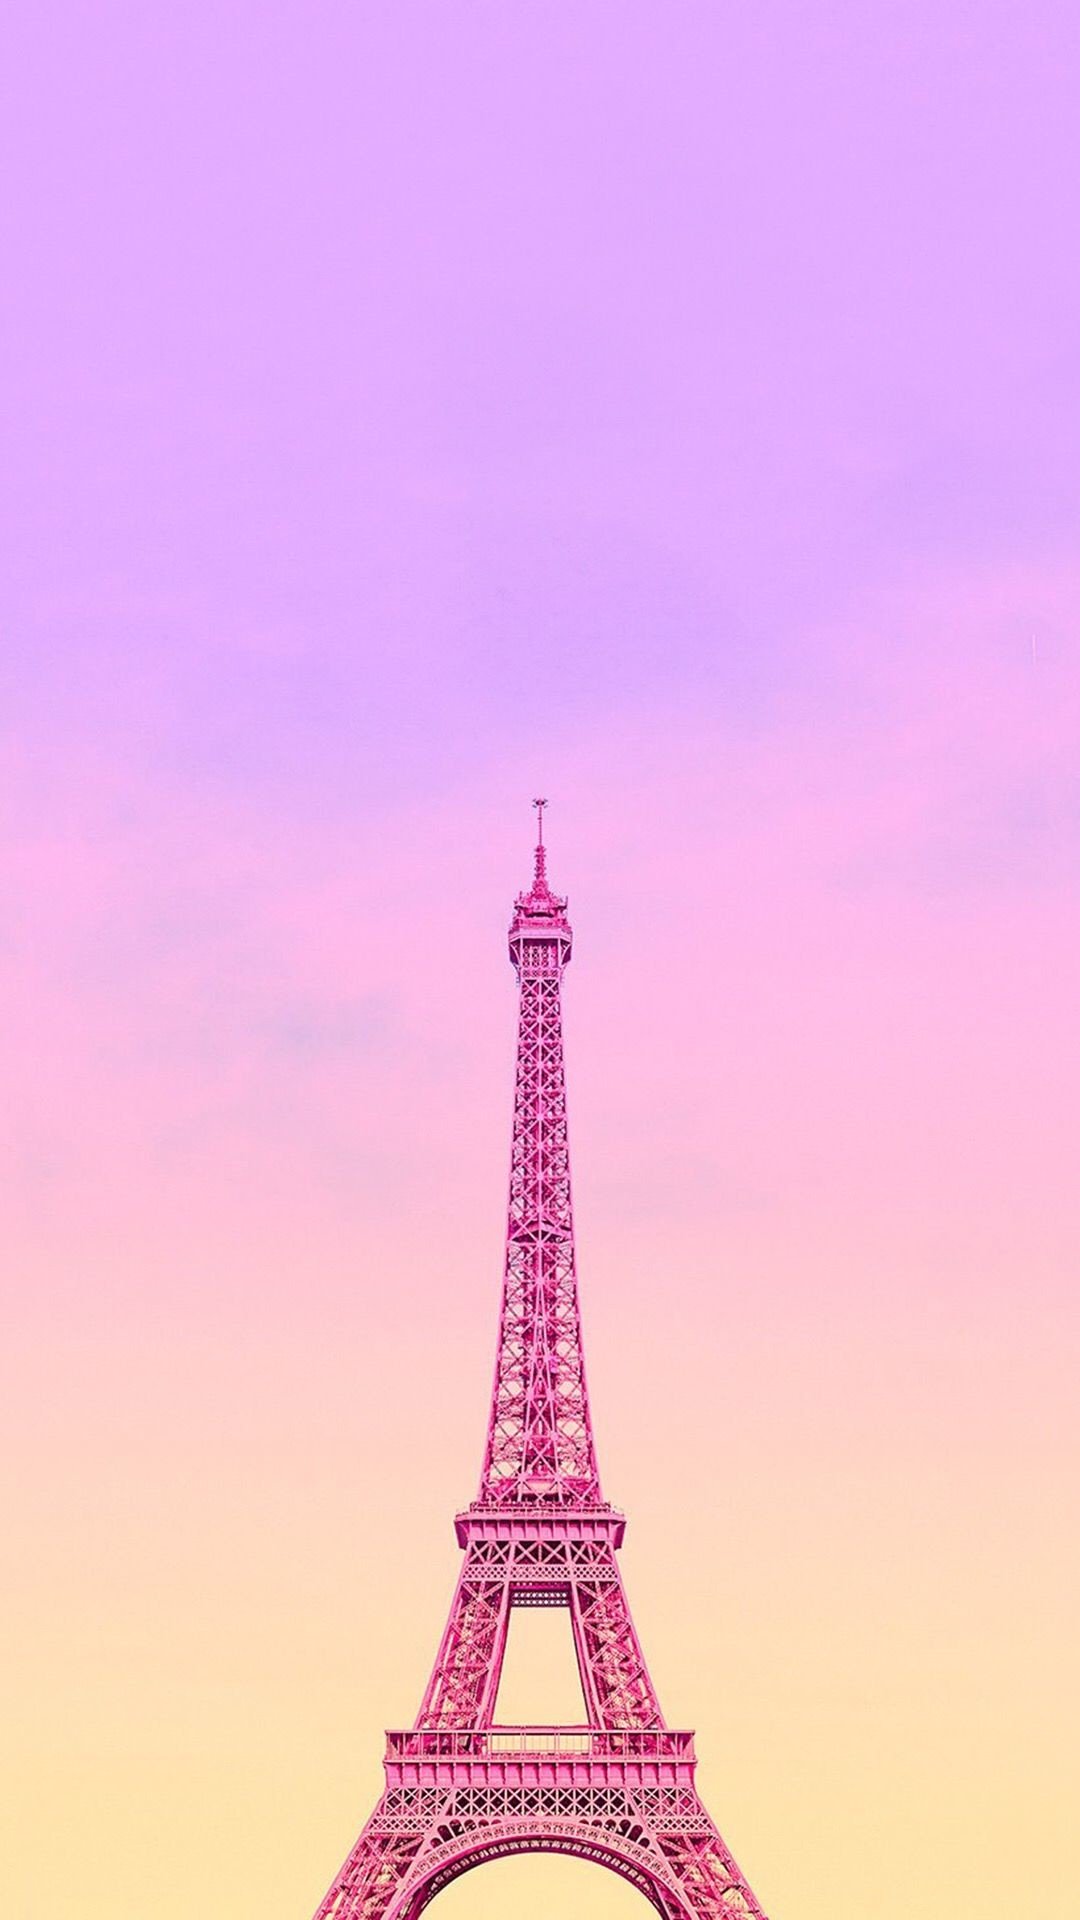 Free Download 69 Cute Paris Wallpapers On Wallpaperplay 1080x1920 For Your Desktop Mobile Tablet Explore 37 Pictures Of Cute Wallpaper Cute Pinterest Wallpapers Cute Pc Wallpaper Summer Wallpaper Pictures Cute